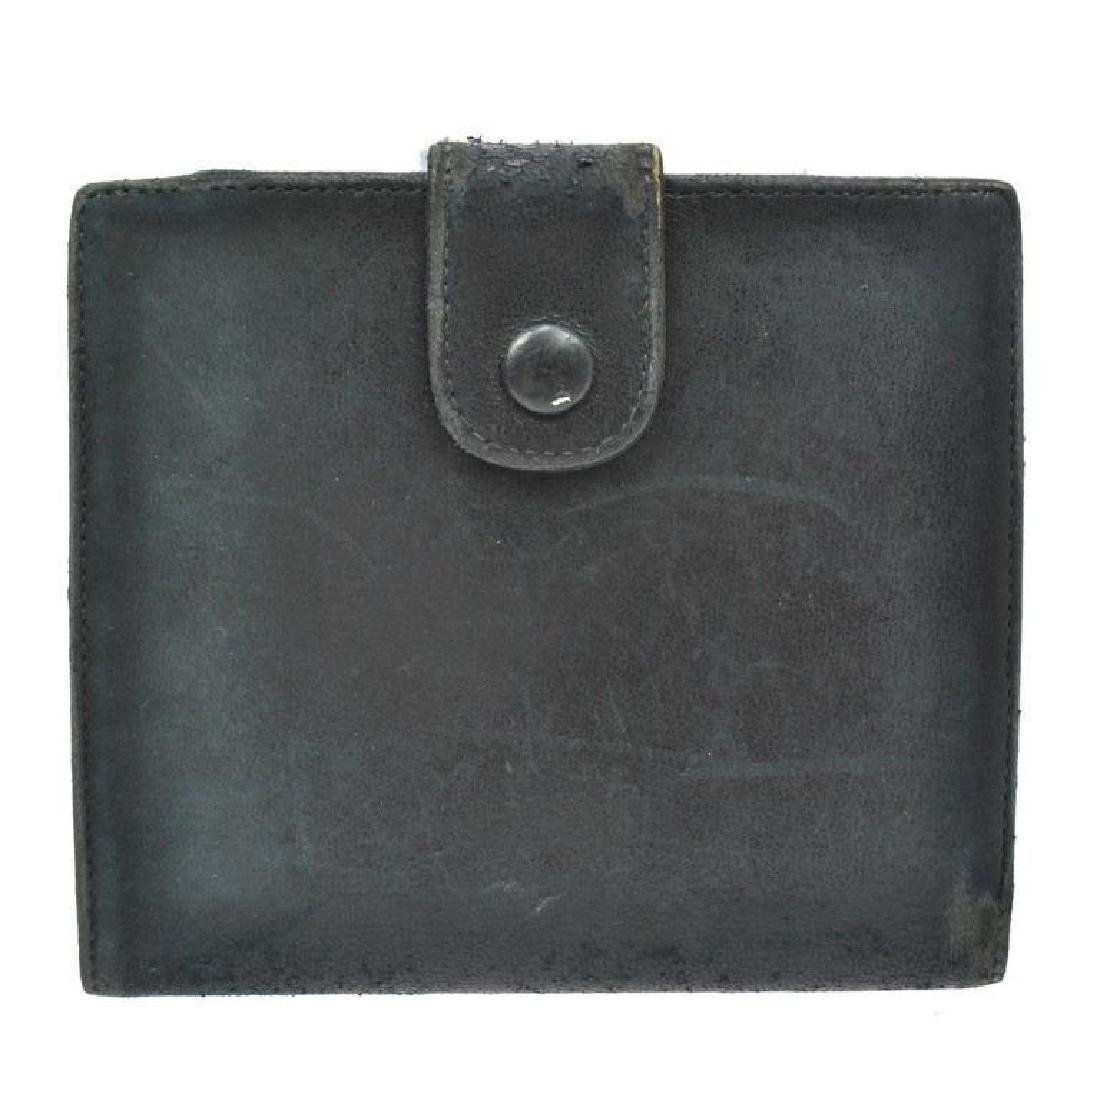 Authentic Vintage CHANEL Leather Wallet - 7